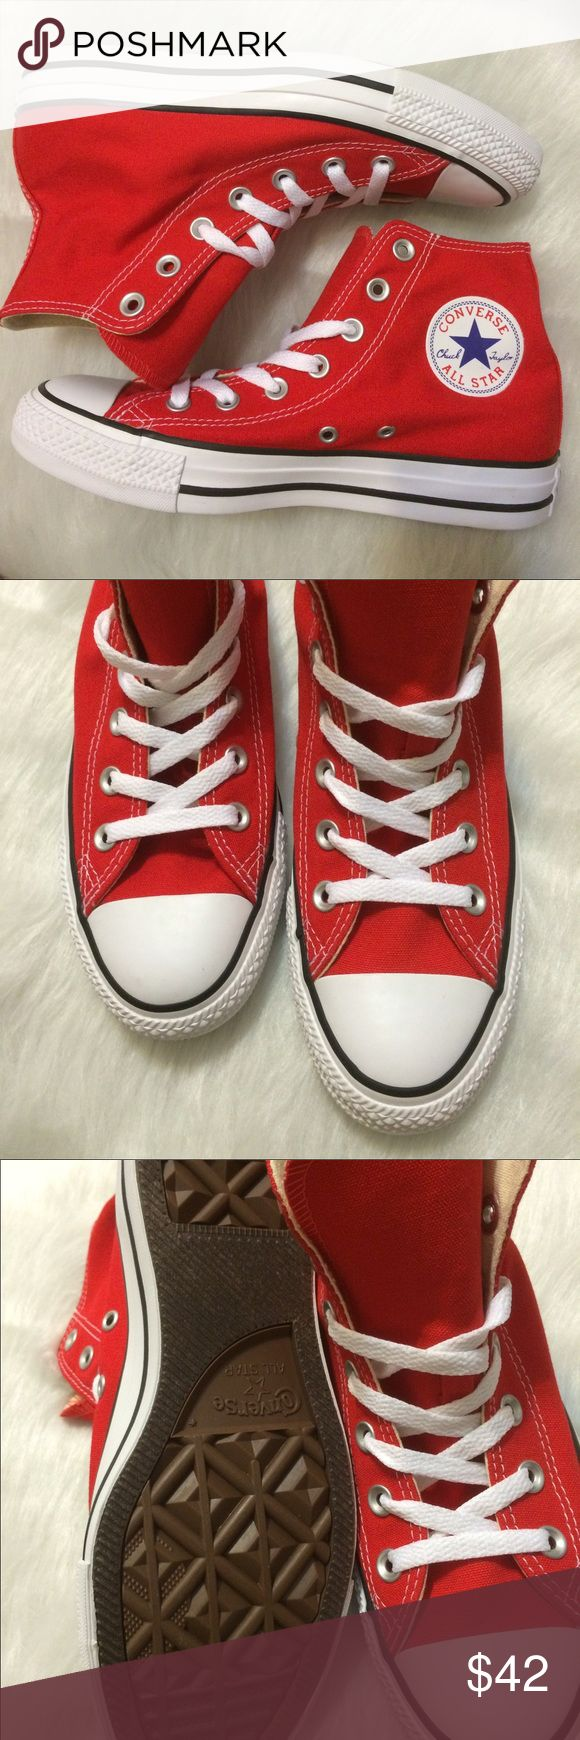 FLASH SALE  CONVERSE WOMENS RED SHOES HI TOPS Brand new without box Converse Shoes Sneakers